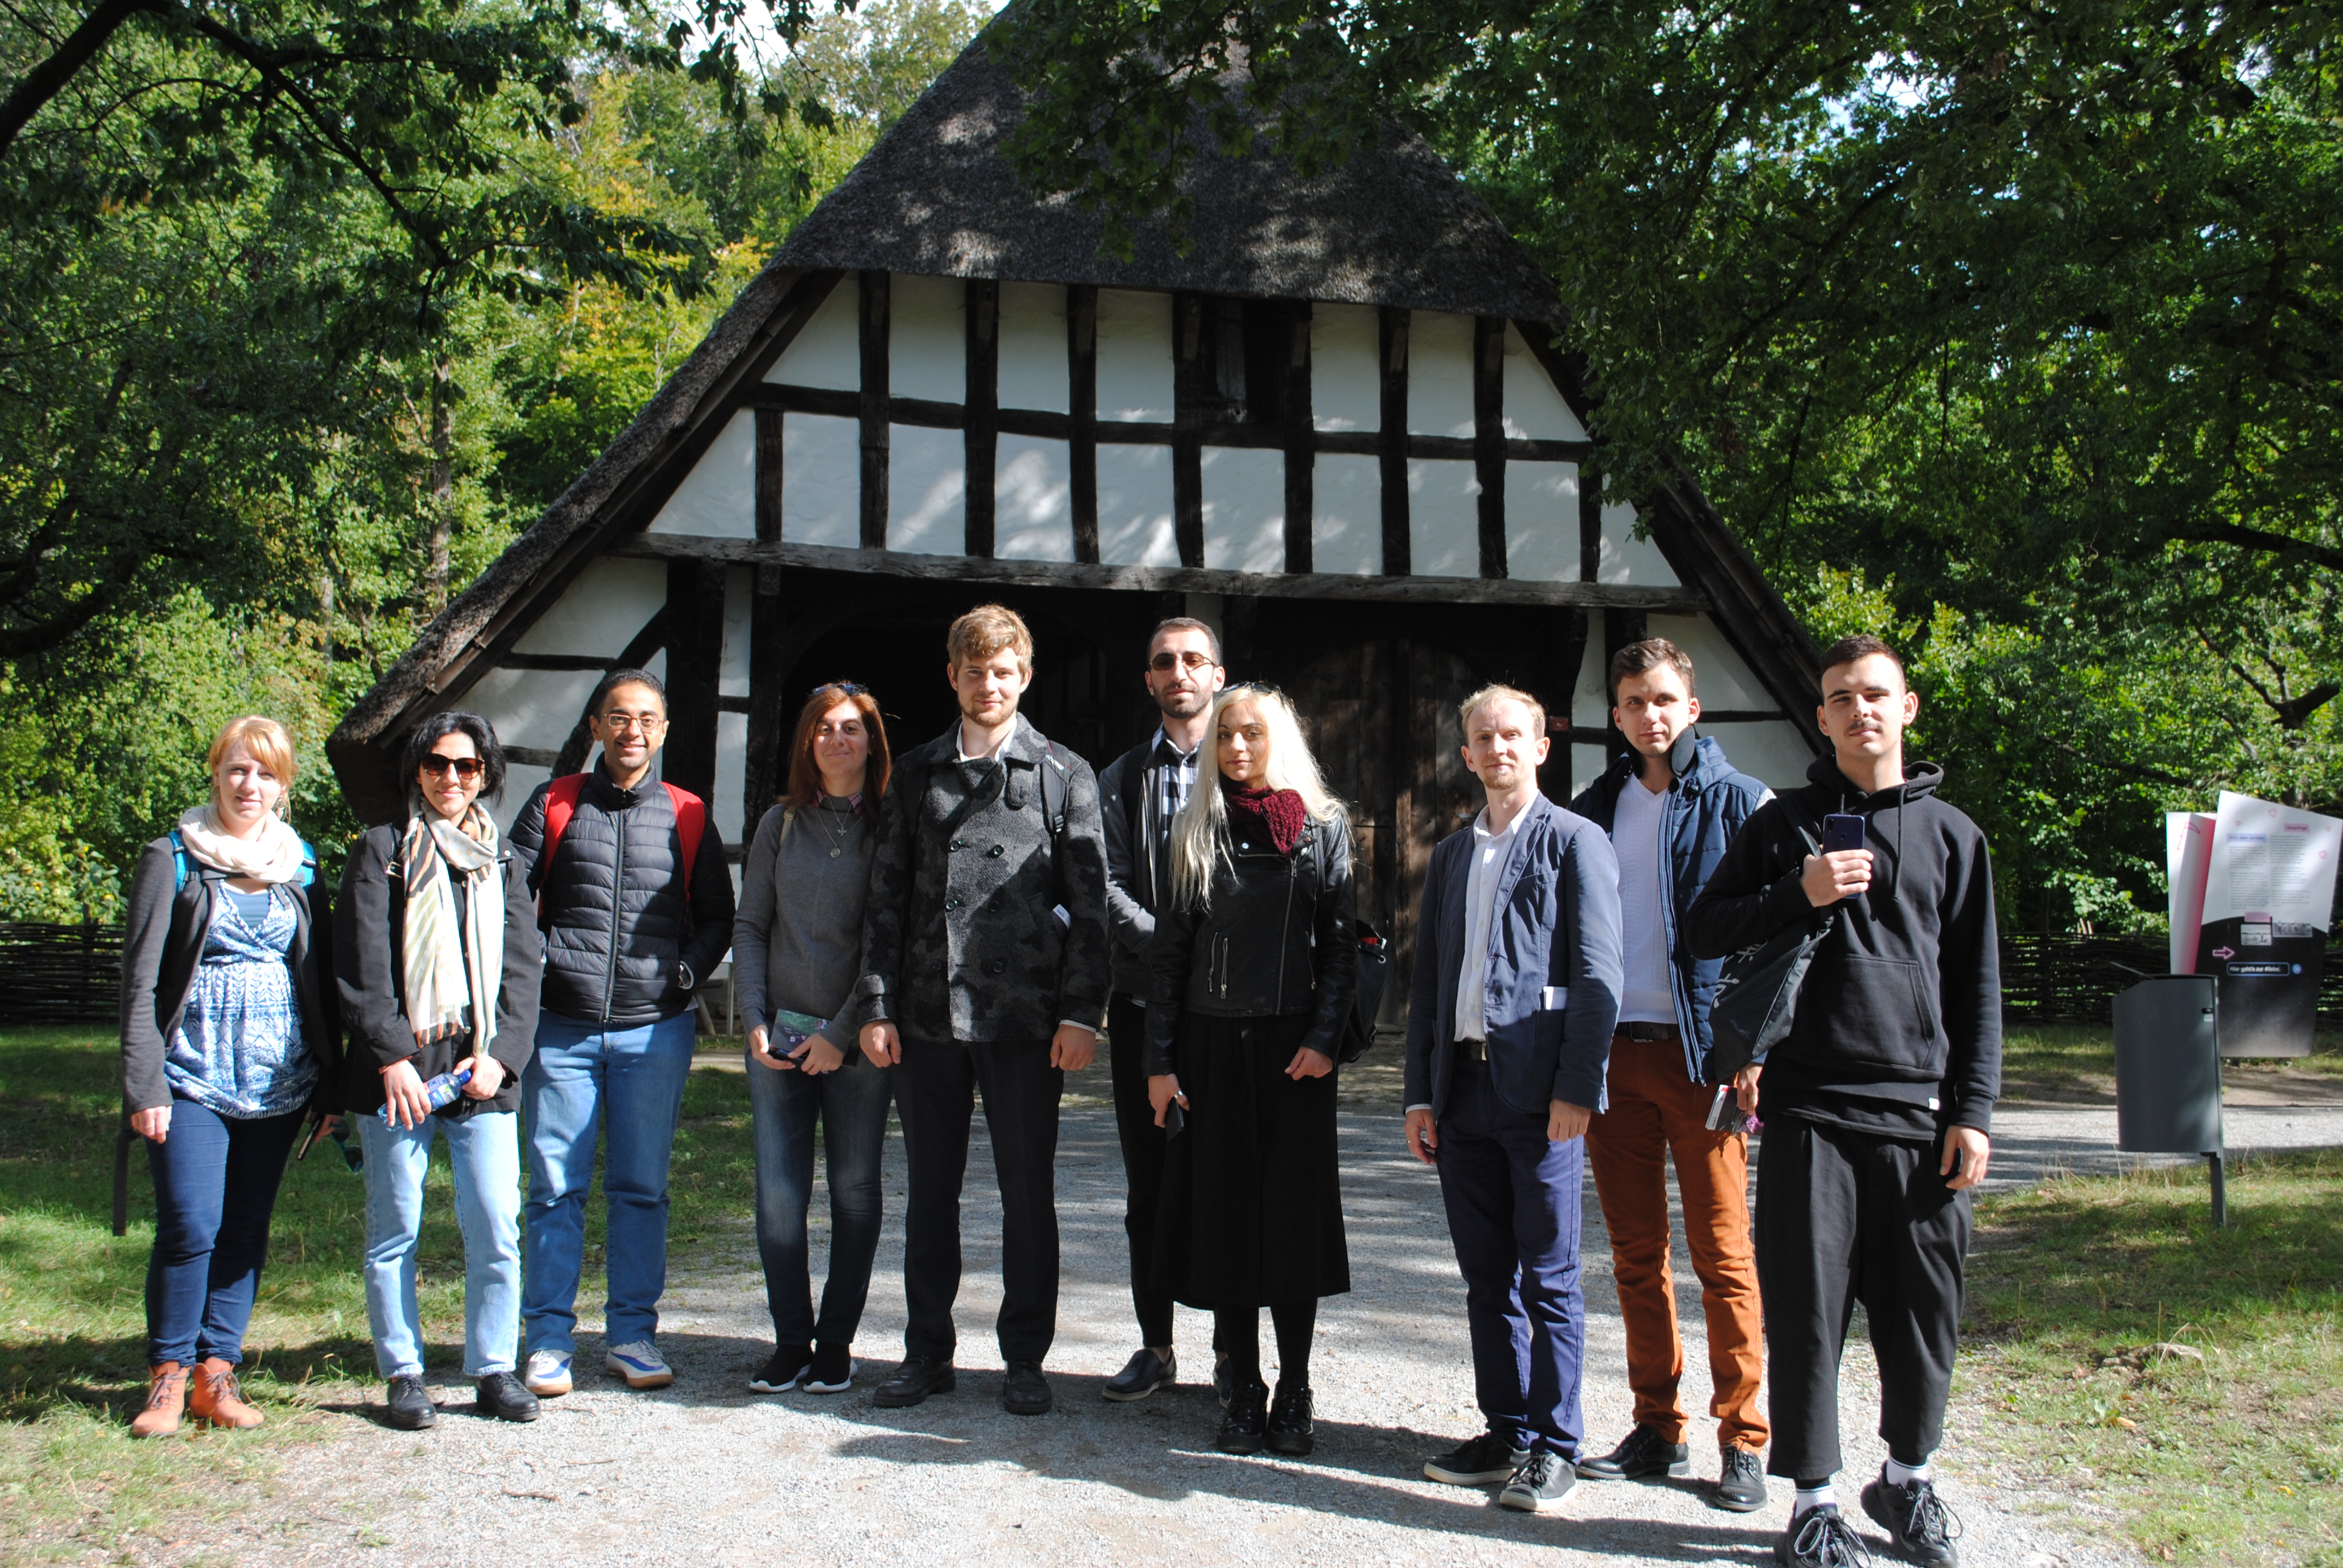 Open-Air museum Detmold: In front of a traditional Westfalian timbered house